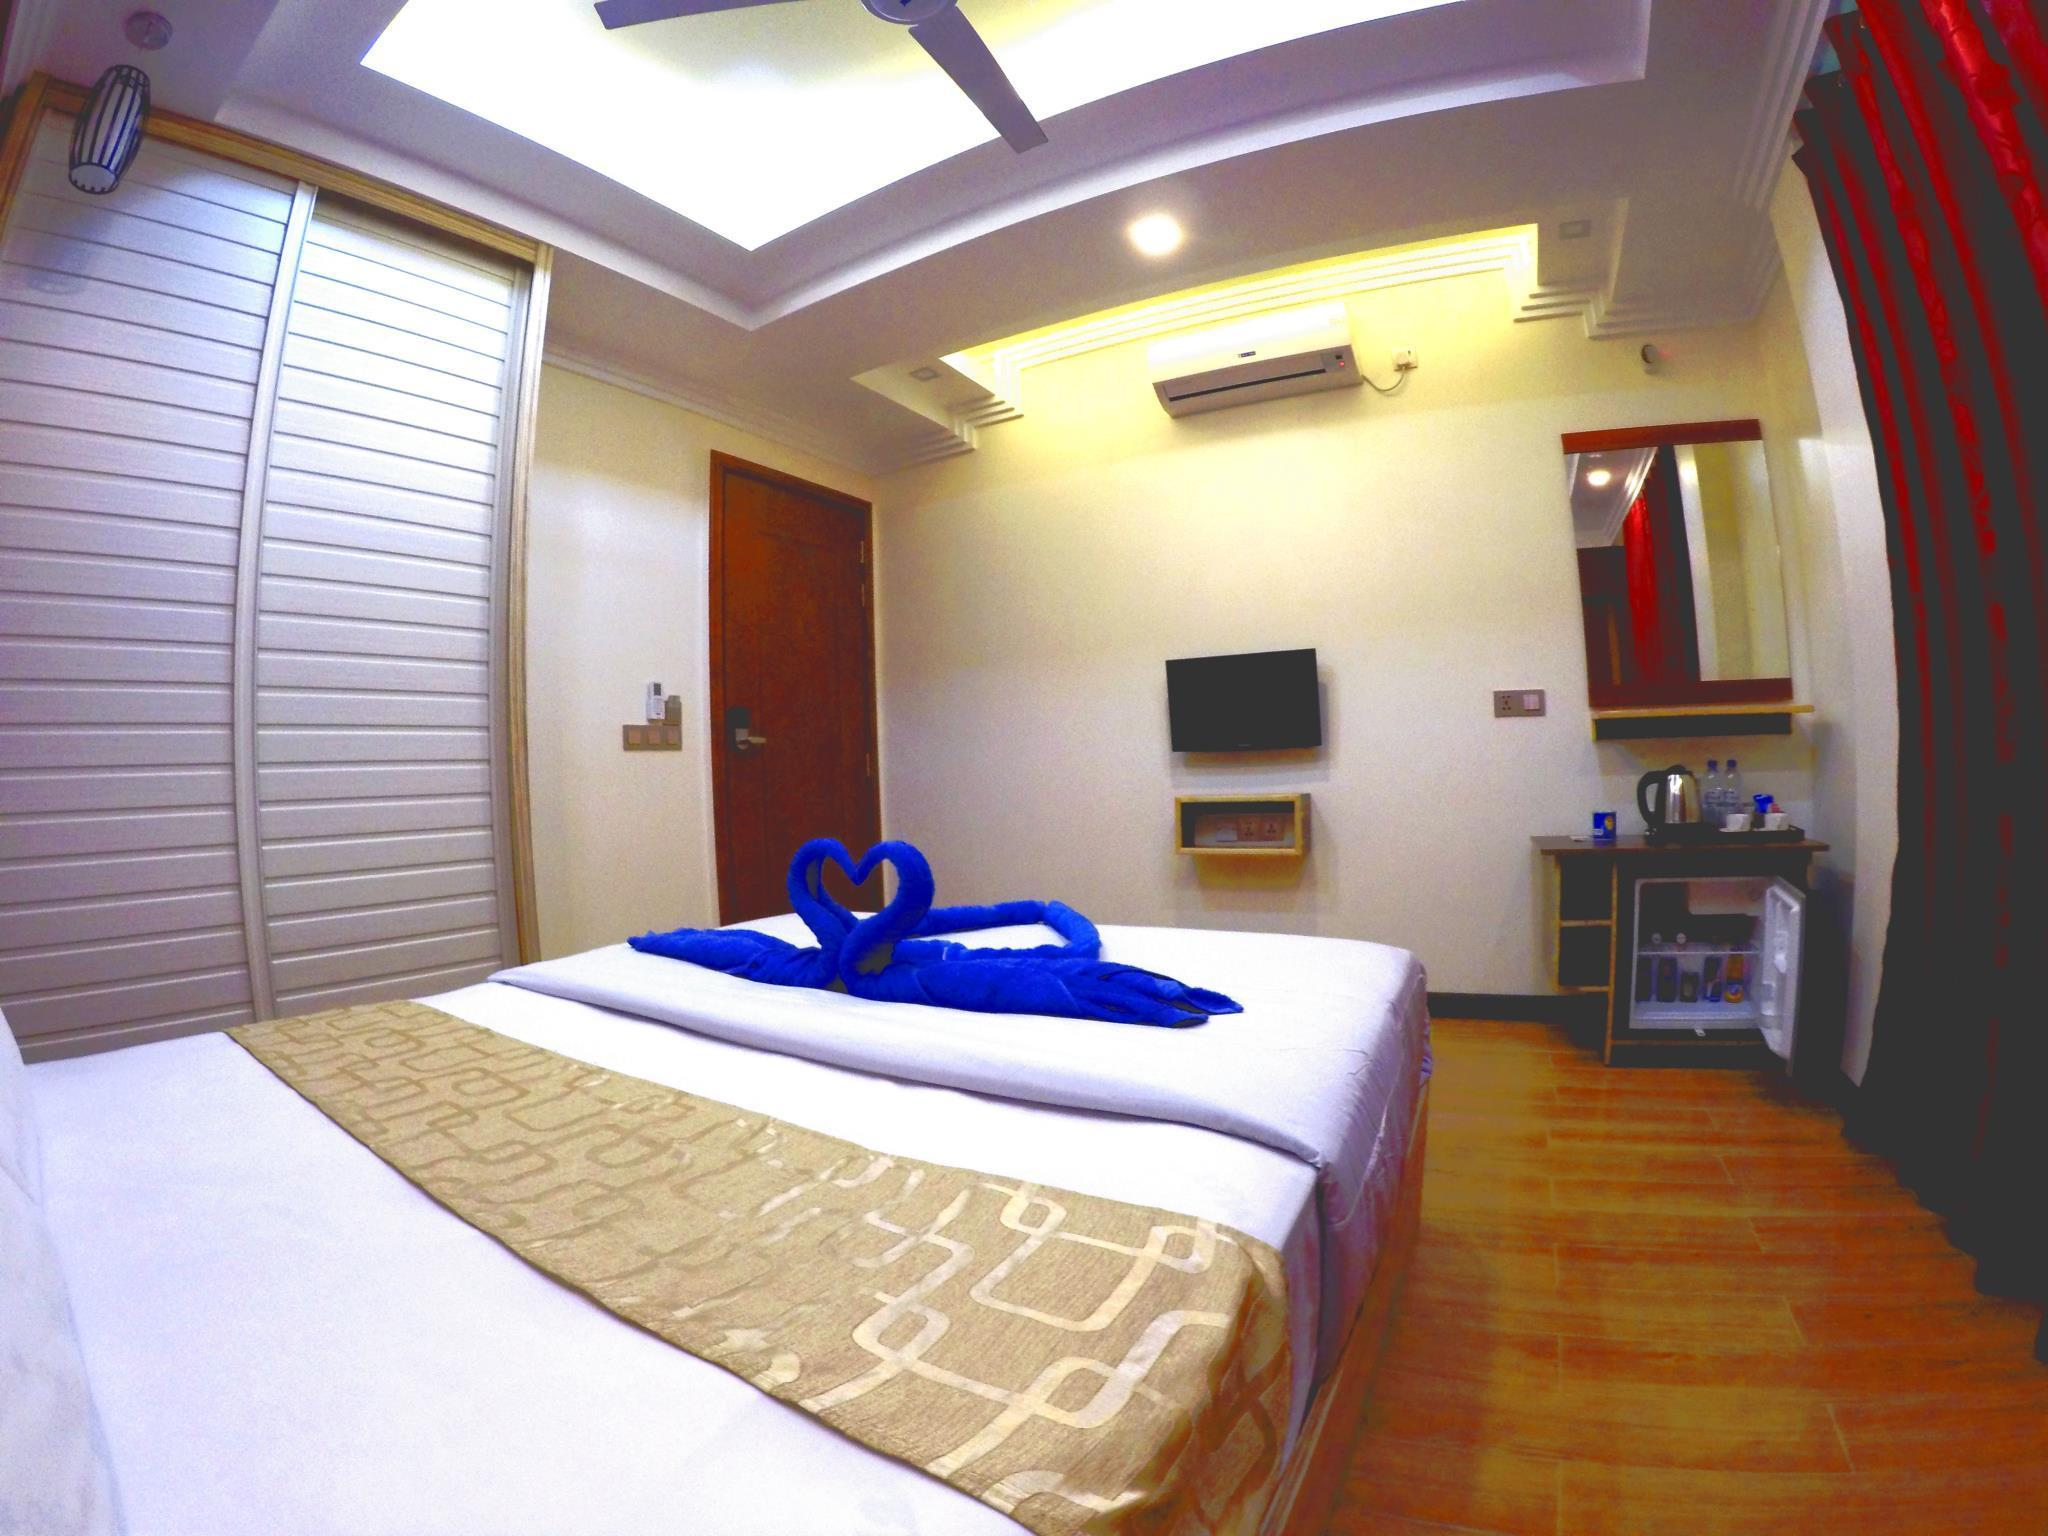 Deluxe Room - Airport Transfers Complimentary